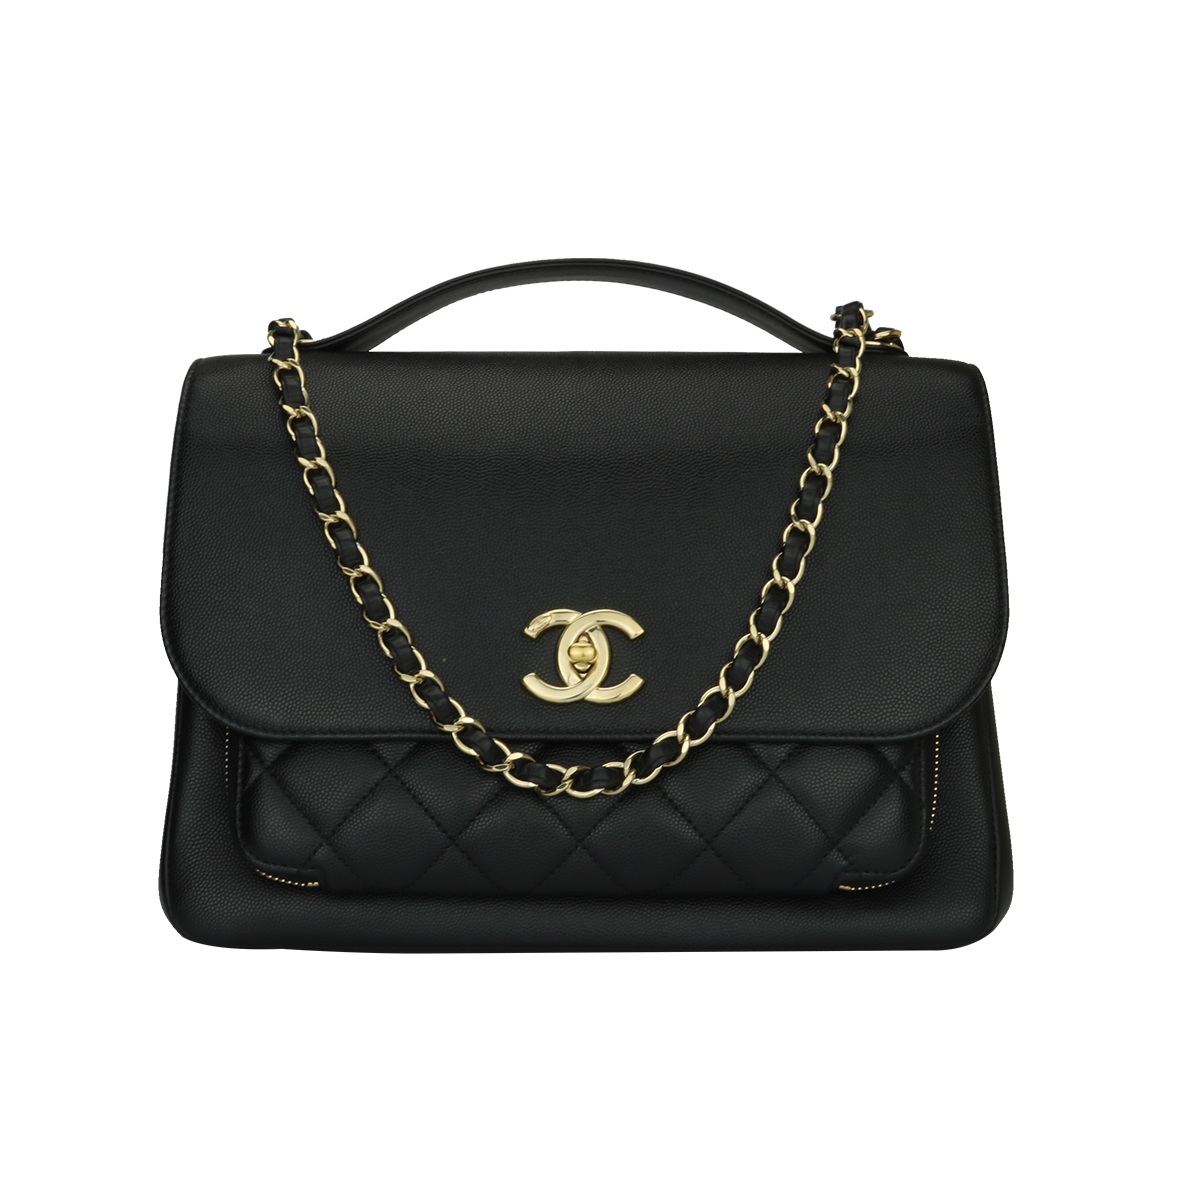 13c8199a2966 Home/Chanel/CHANEL Business Affinity Large Black Caviar/Calf Champagne  Hardware 2017. ; 